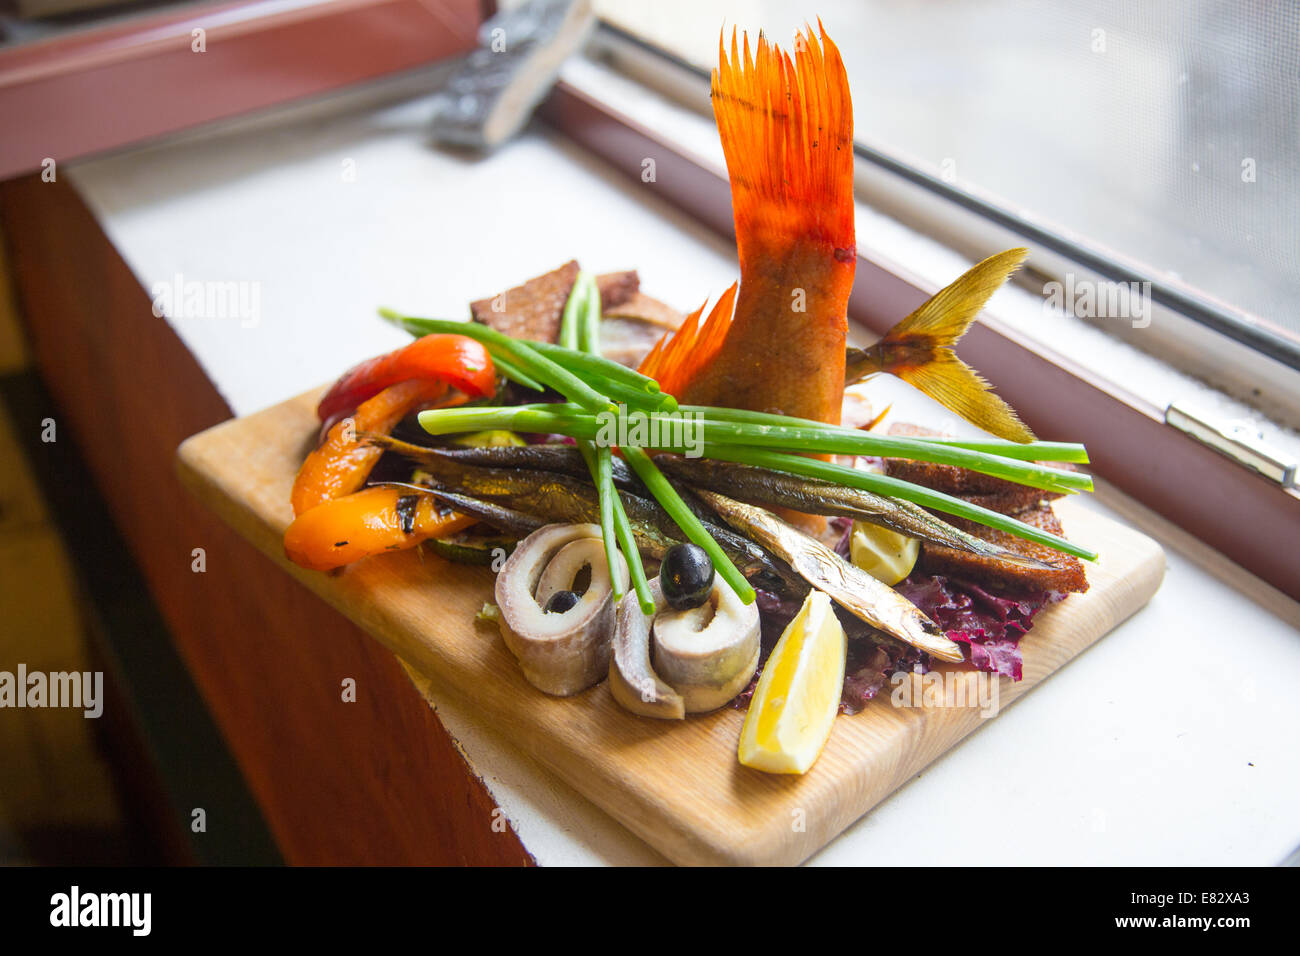 Assorted fish platter at Cafe 371 inside Central Market, Riga, Latvia - Stock Image